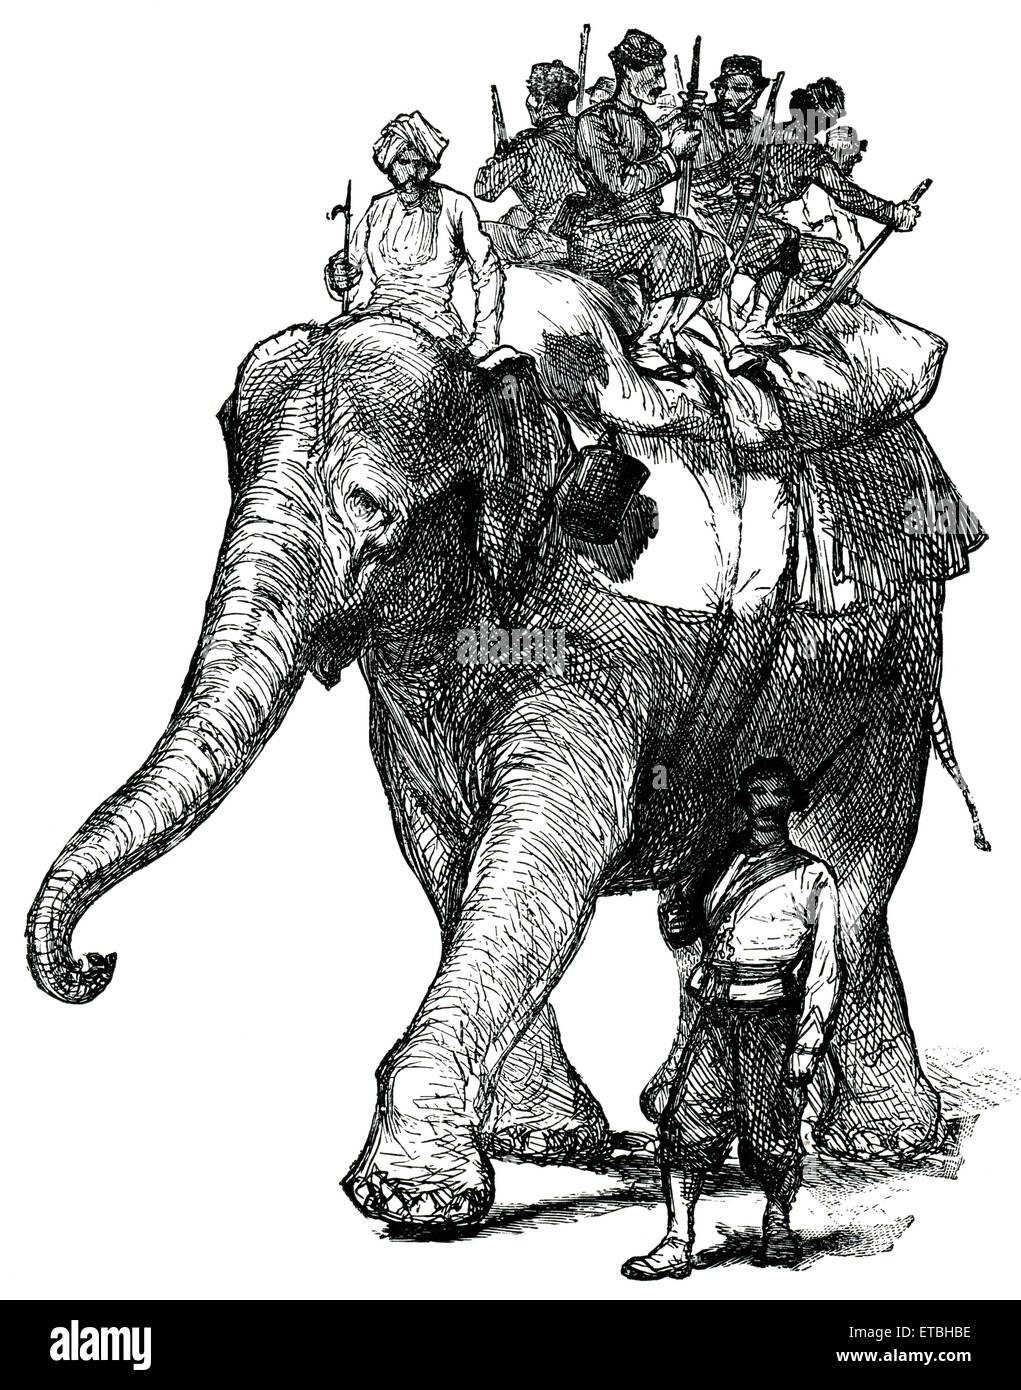 Elephant Transporting Soldiers during War, Afghanistan, 'Classical Portfolio of Primitive Carriers', by - Stock Image